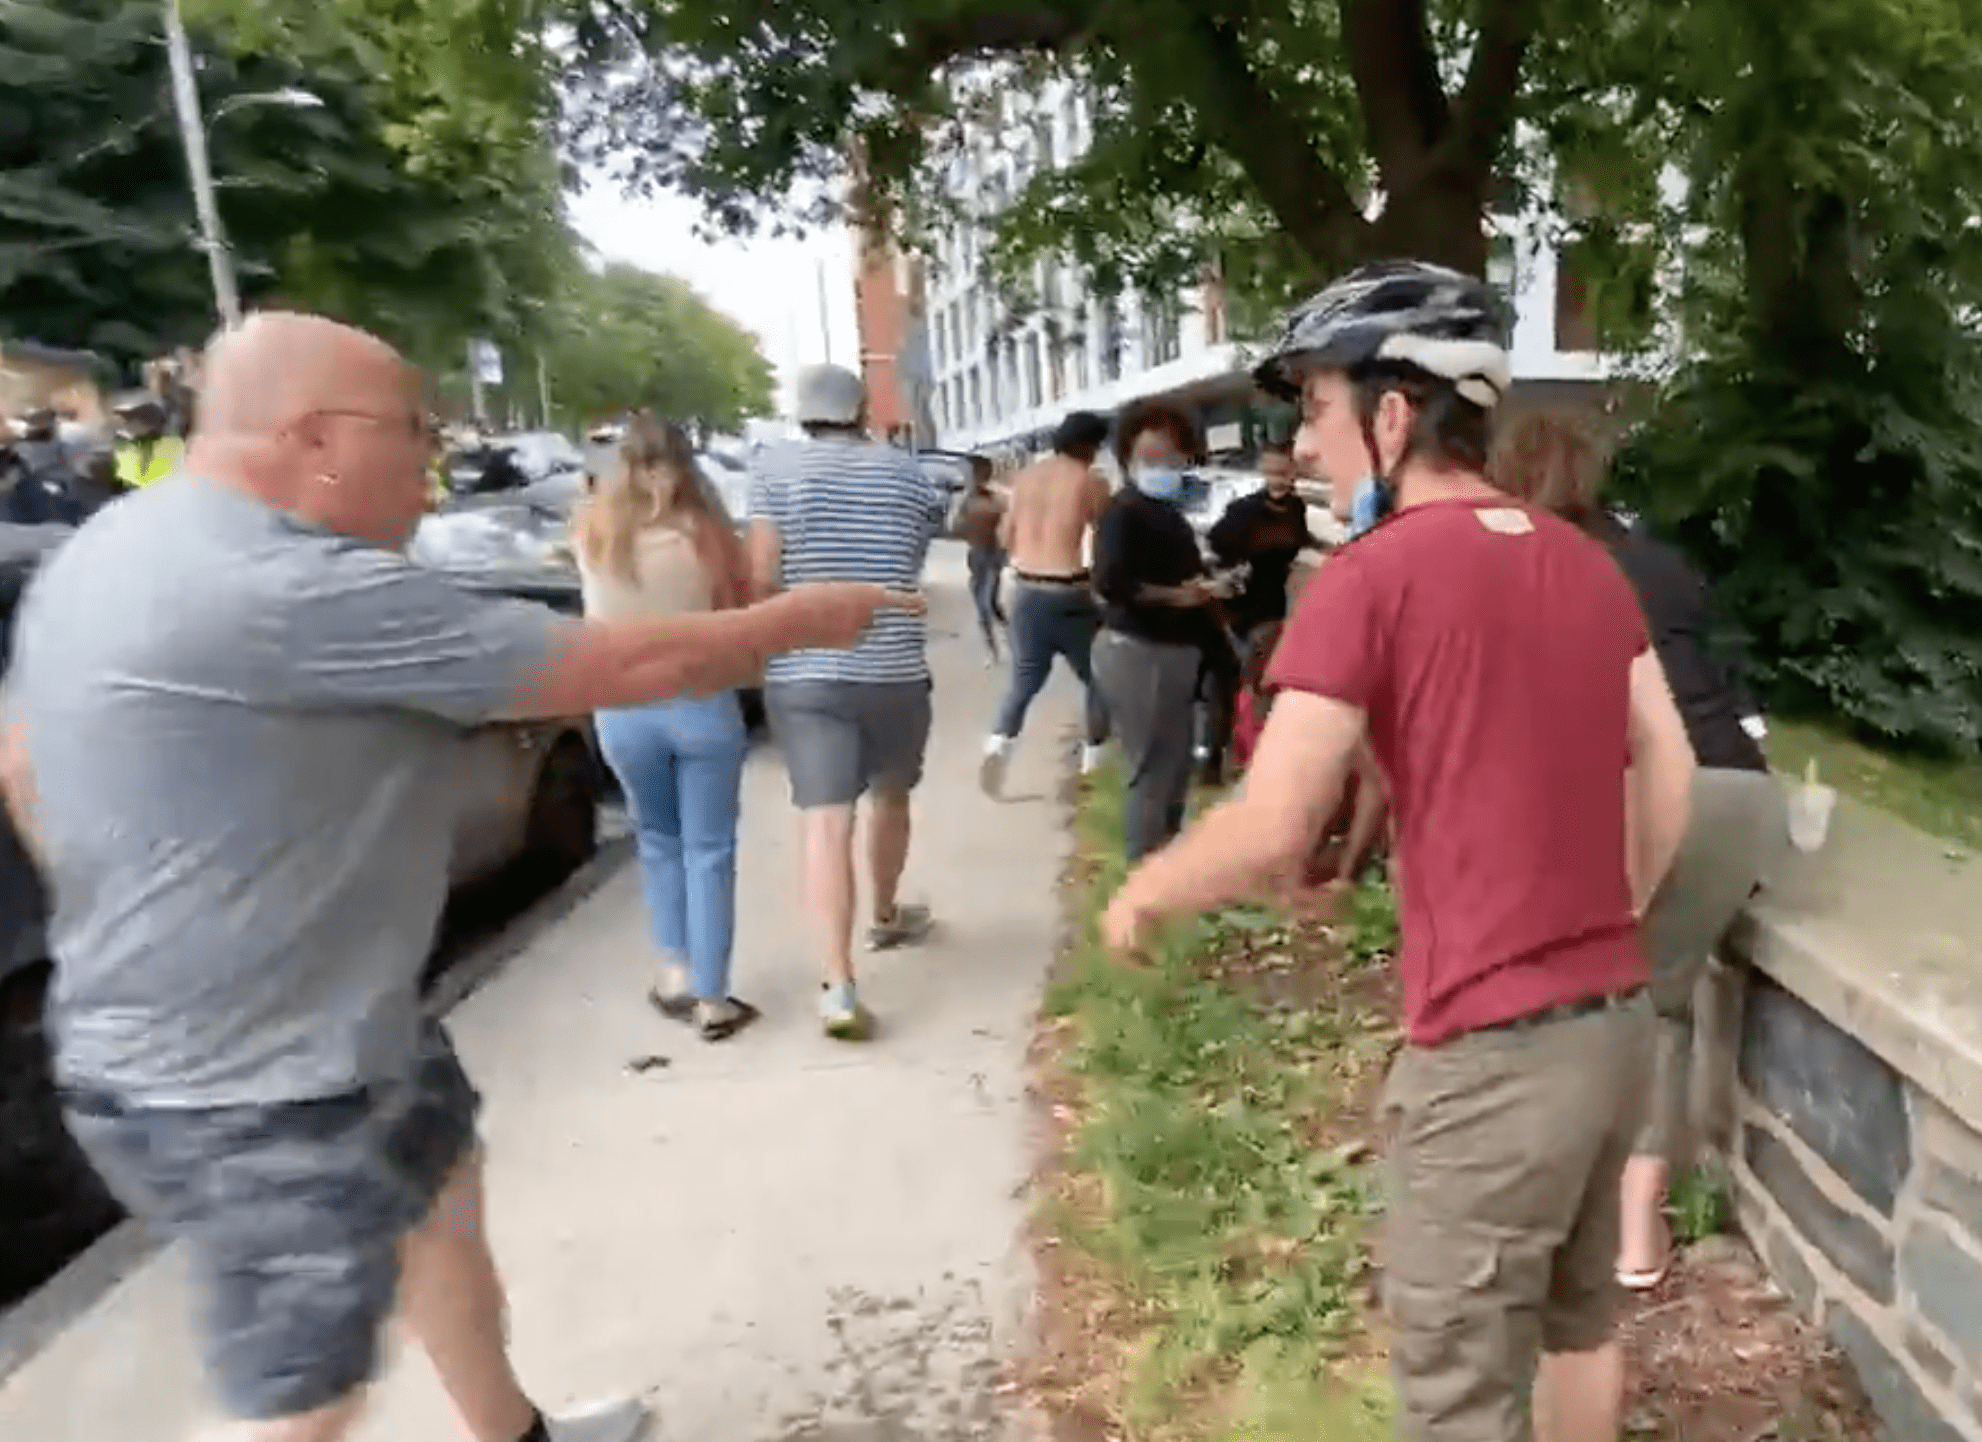 Protestors react to police who have been violent with them | Photo: Twitter/zwoodford